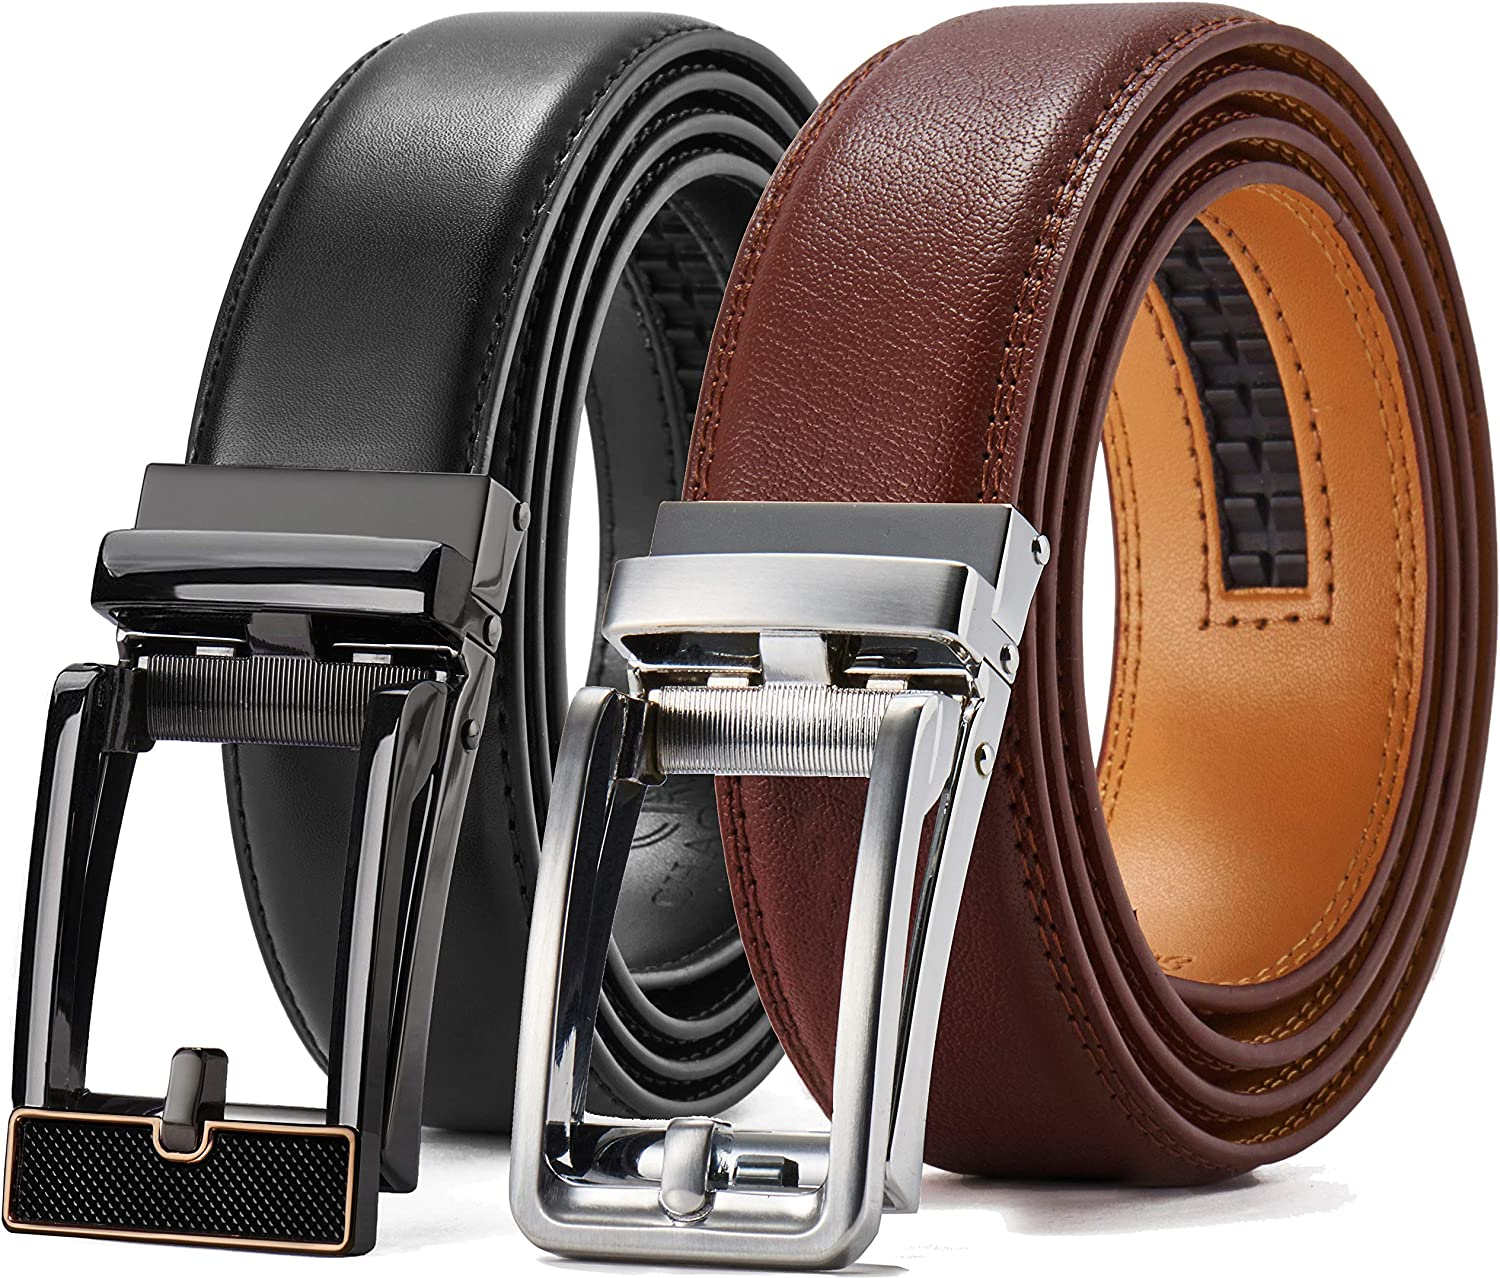 "Leather Ratchet Dress Belt 2 Pack 1 3/8"", Chaoren Click Adjustable Belt Comfort with Slide Buckle, Trim to Exact Fit"